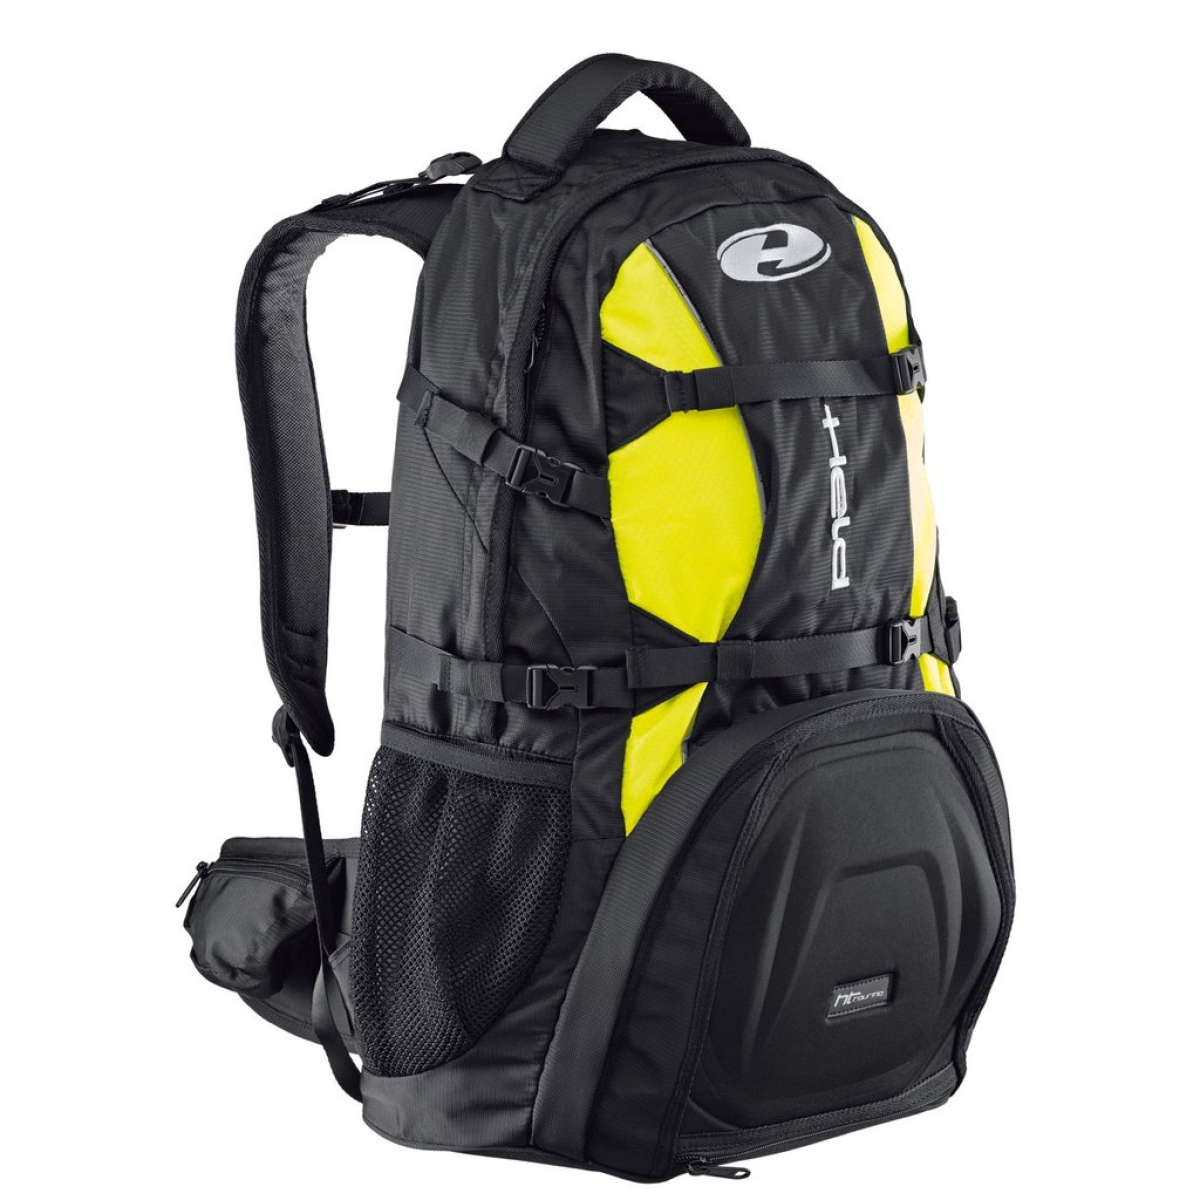 Adventure essentials – Held Adventure EVO backpack